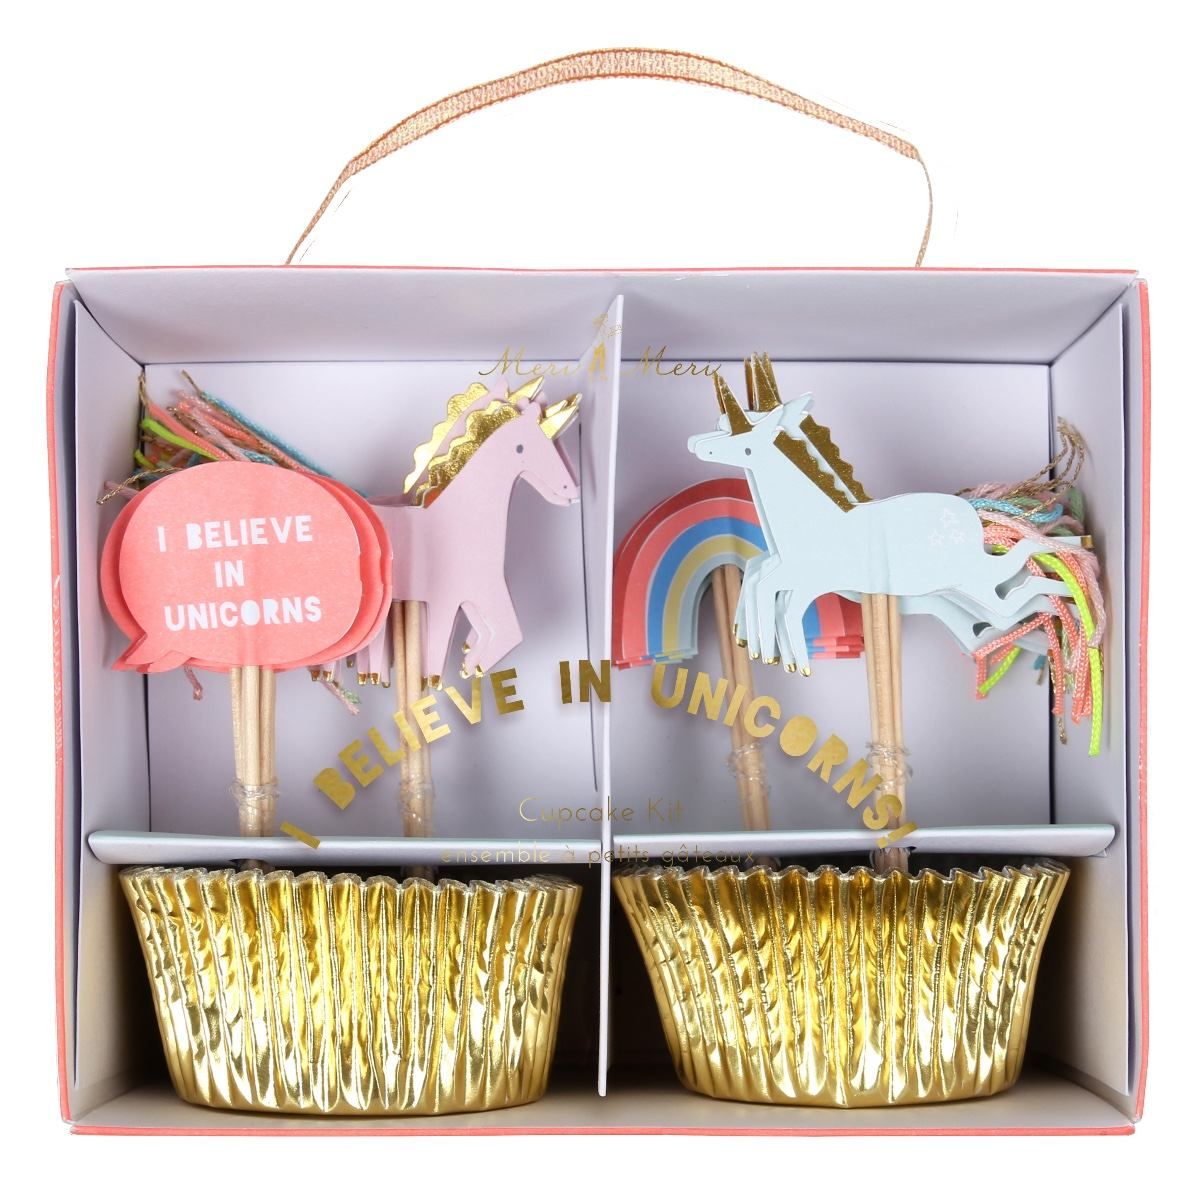 Cupcake Kit - Unicorns and Rainbows